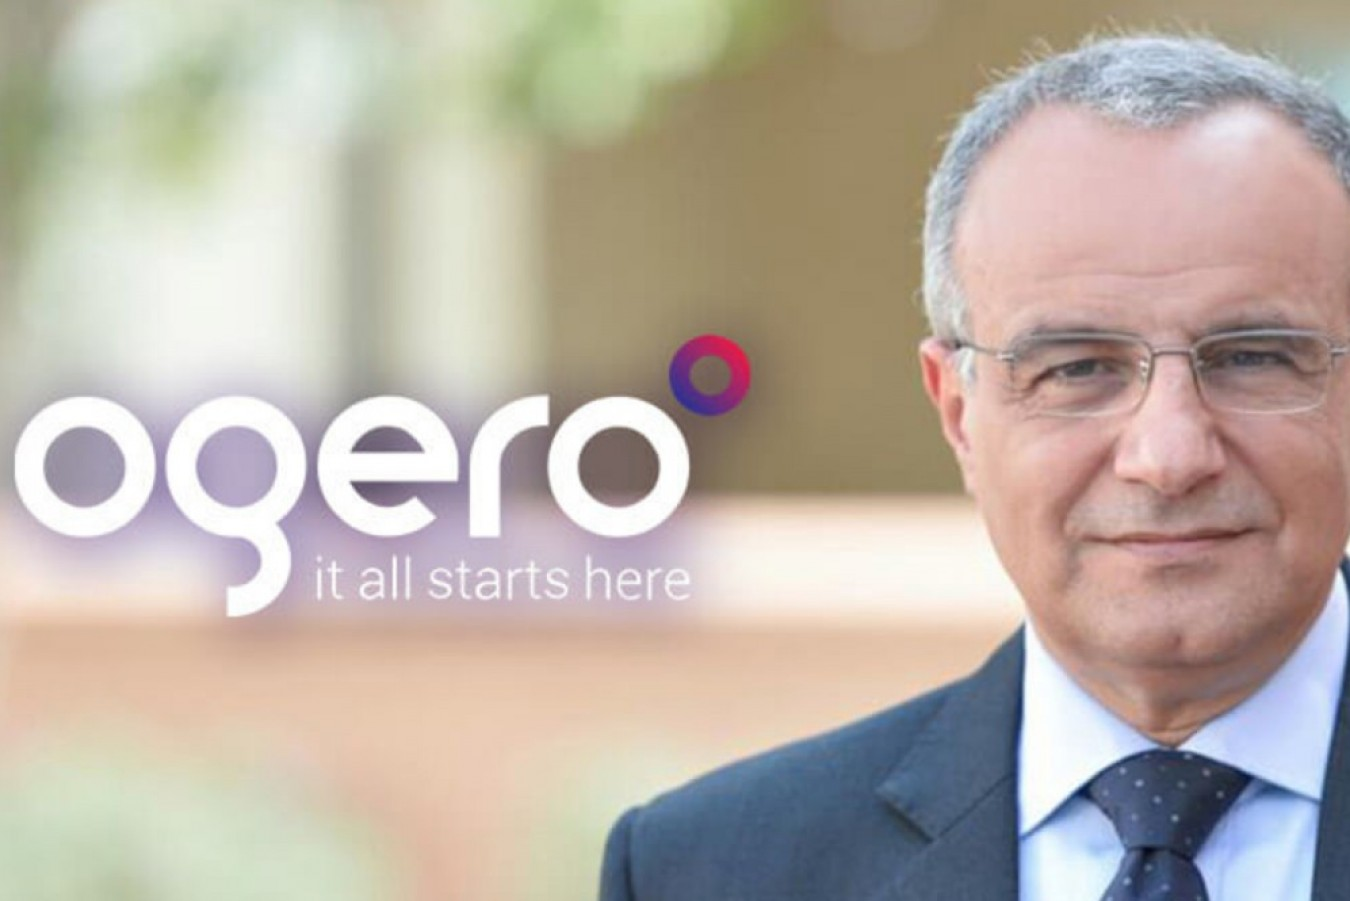 Ogero connecting the nation